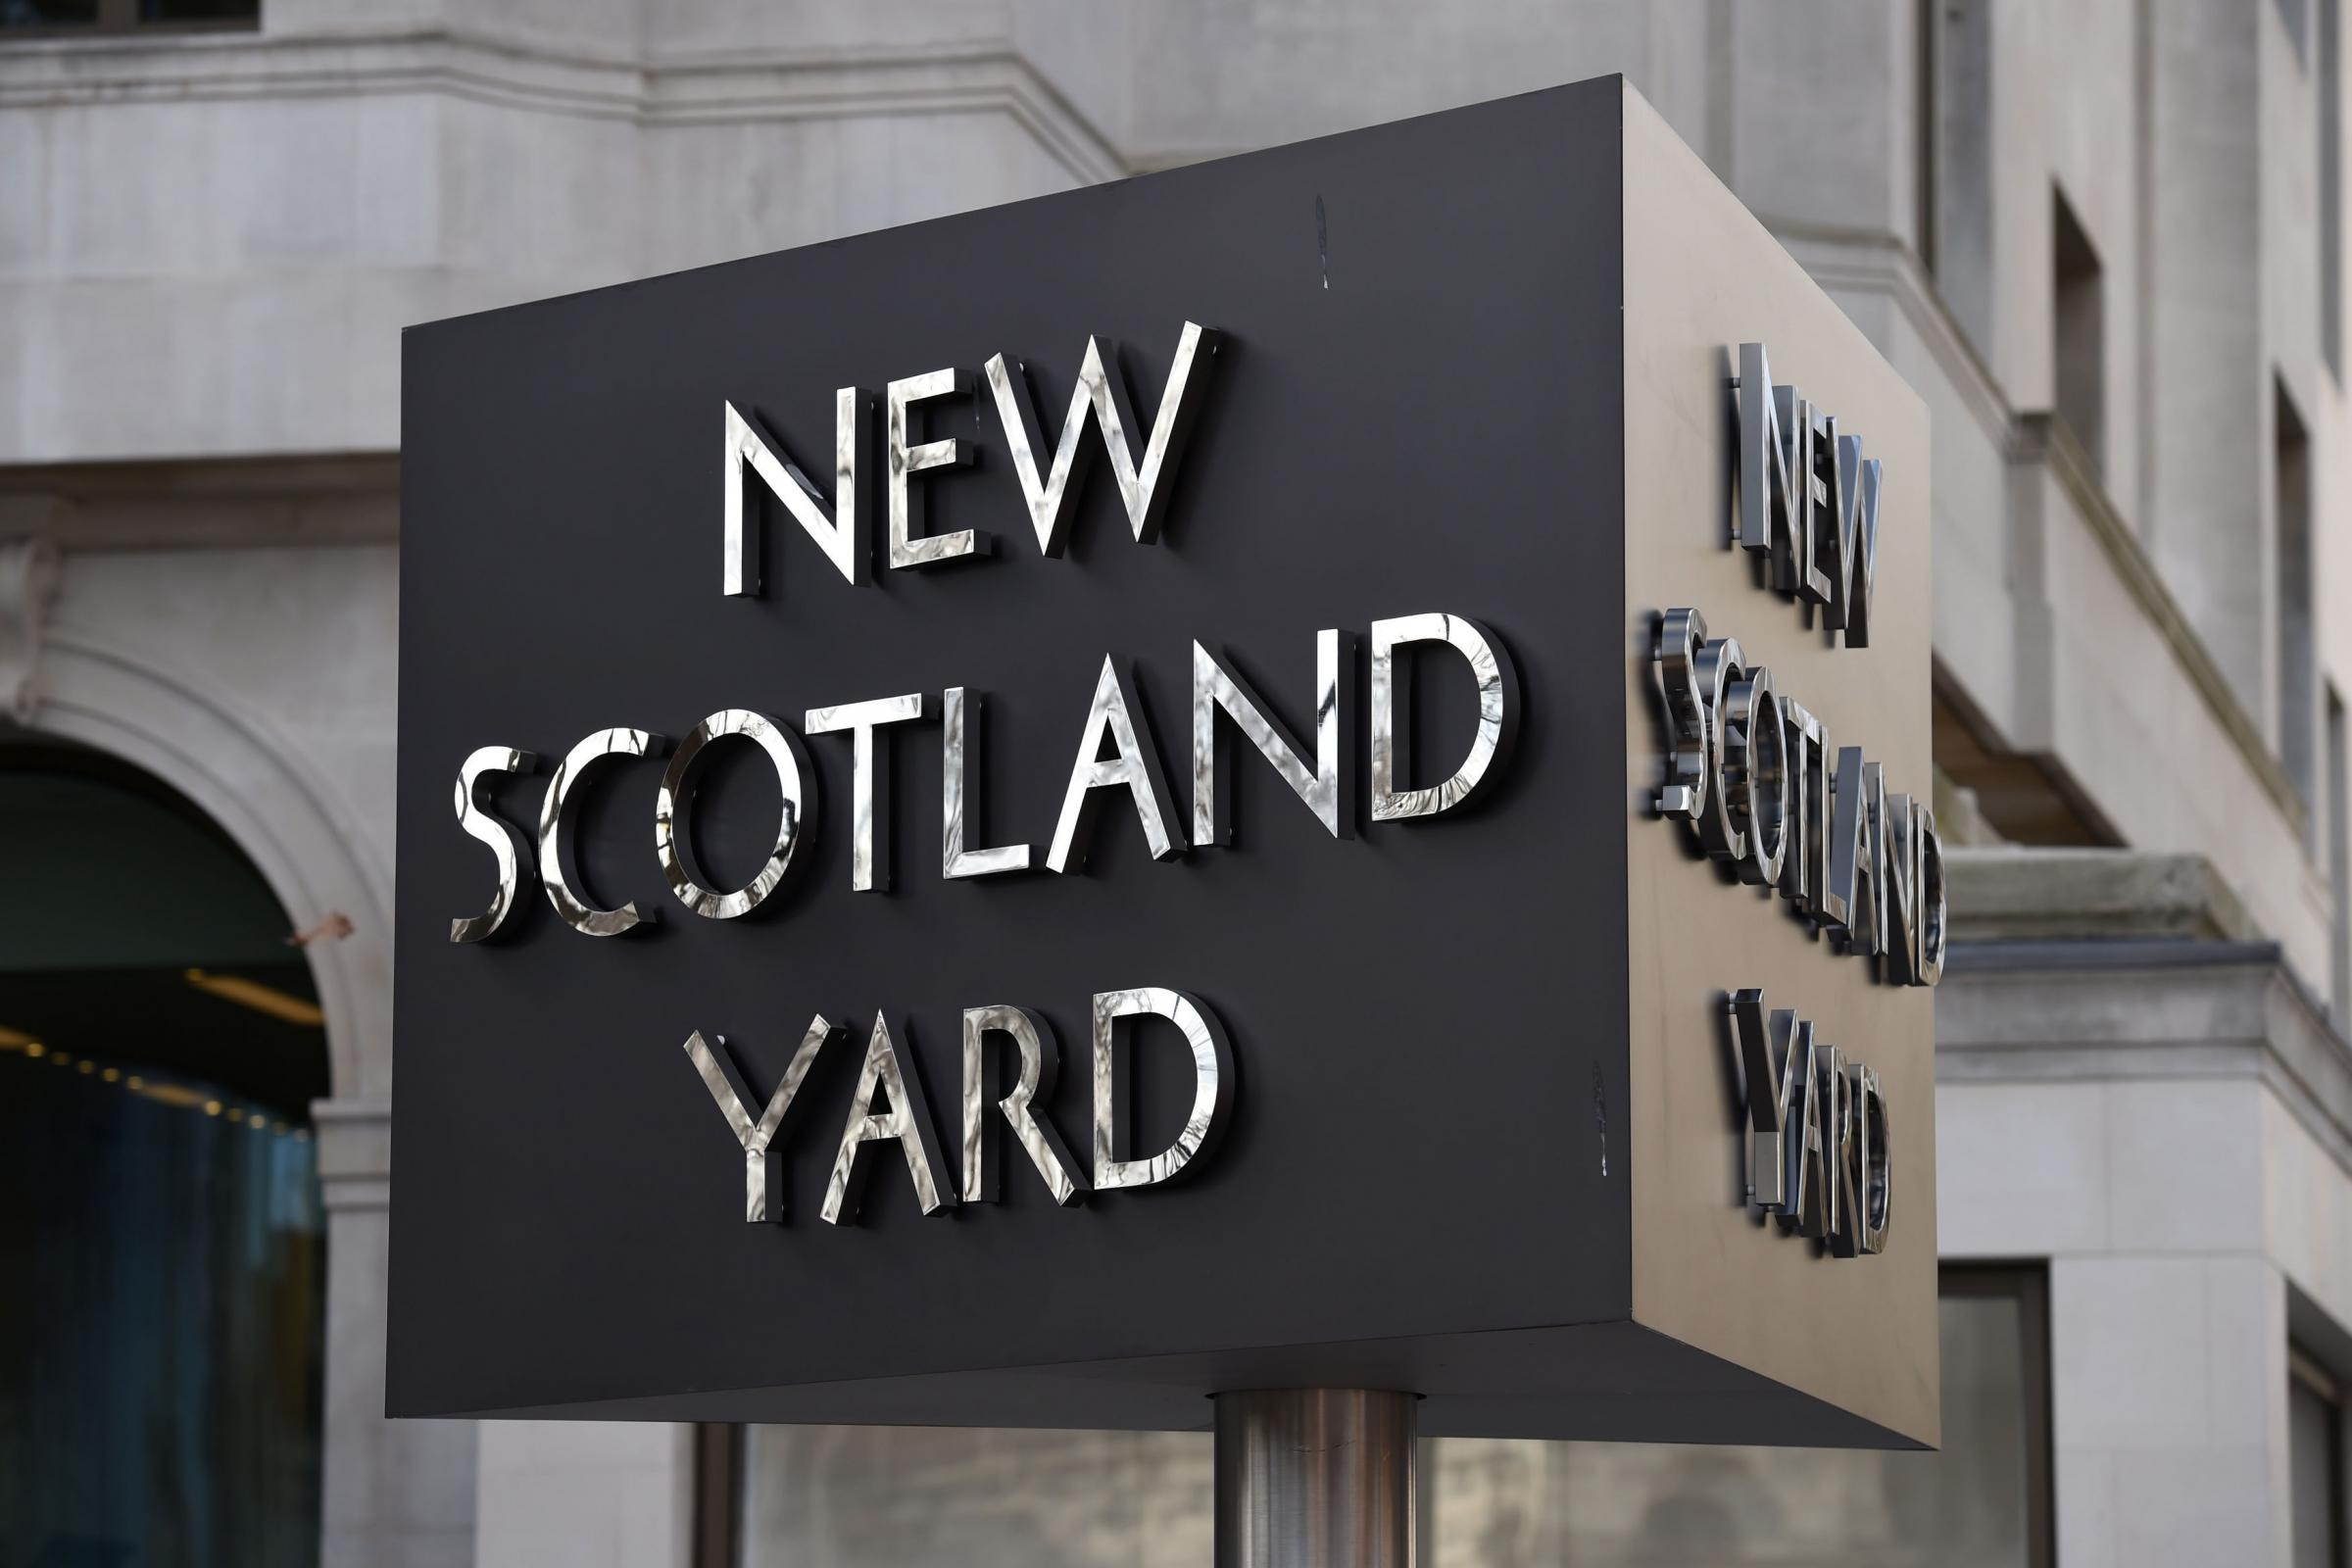 Armed police arrest teenager  on suspicion of terrorism